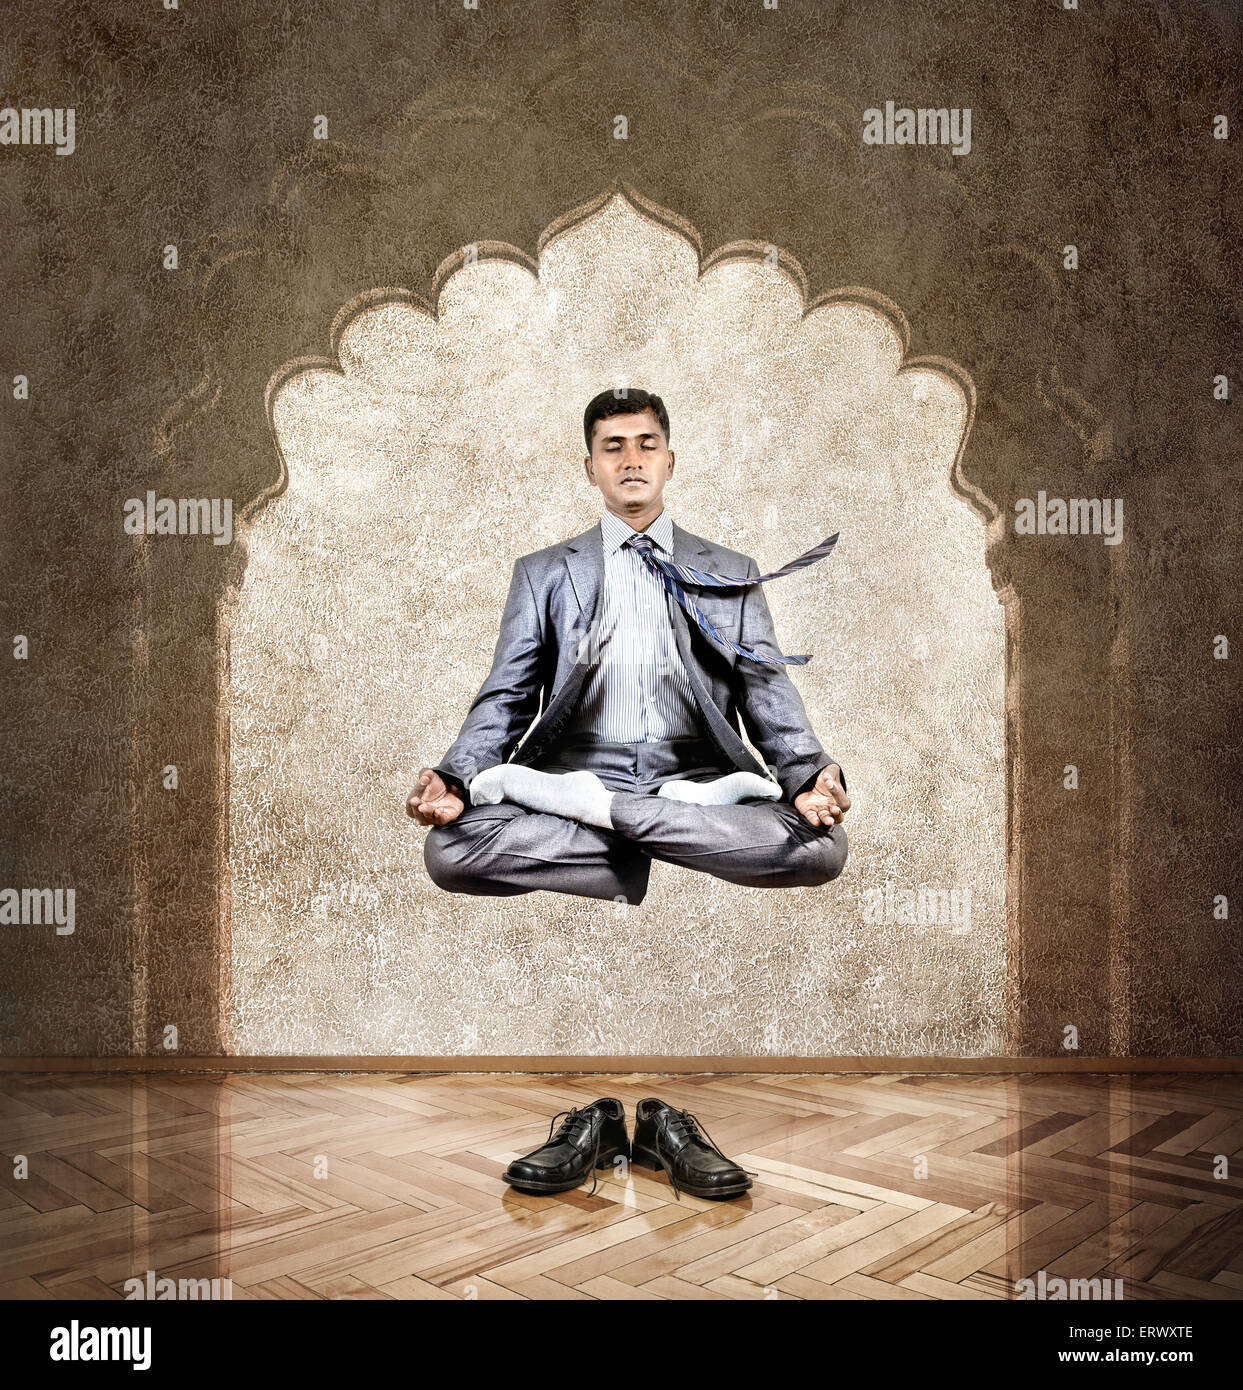 Indian businessman doing meditation in the air in lotus pose at the office with arch on the wall - Stock Image